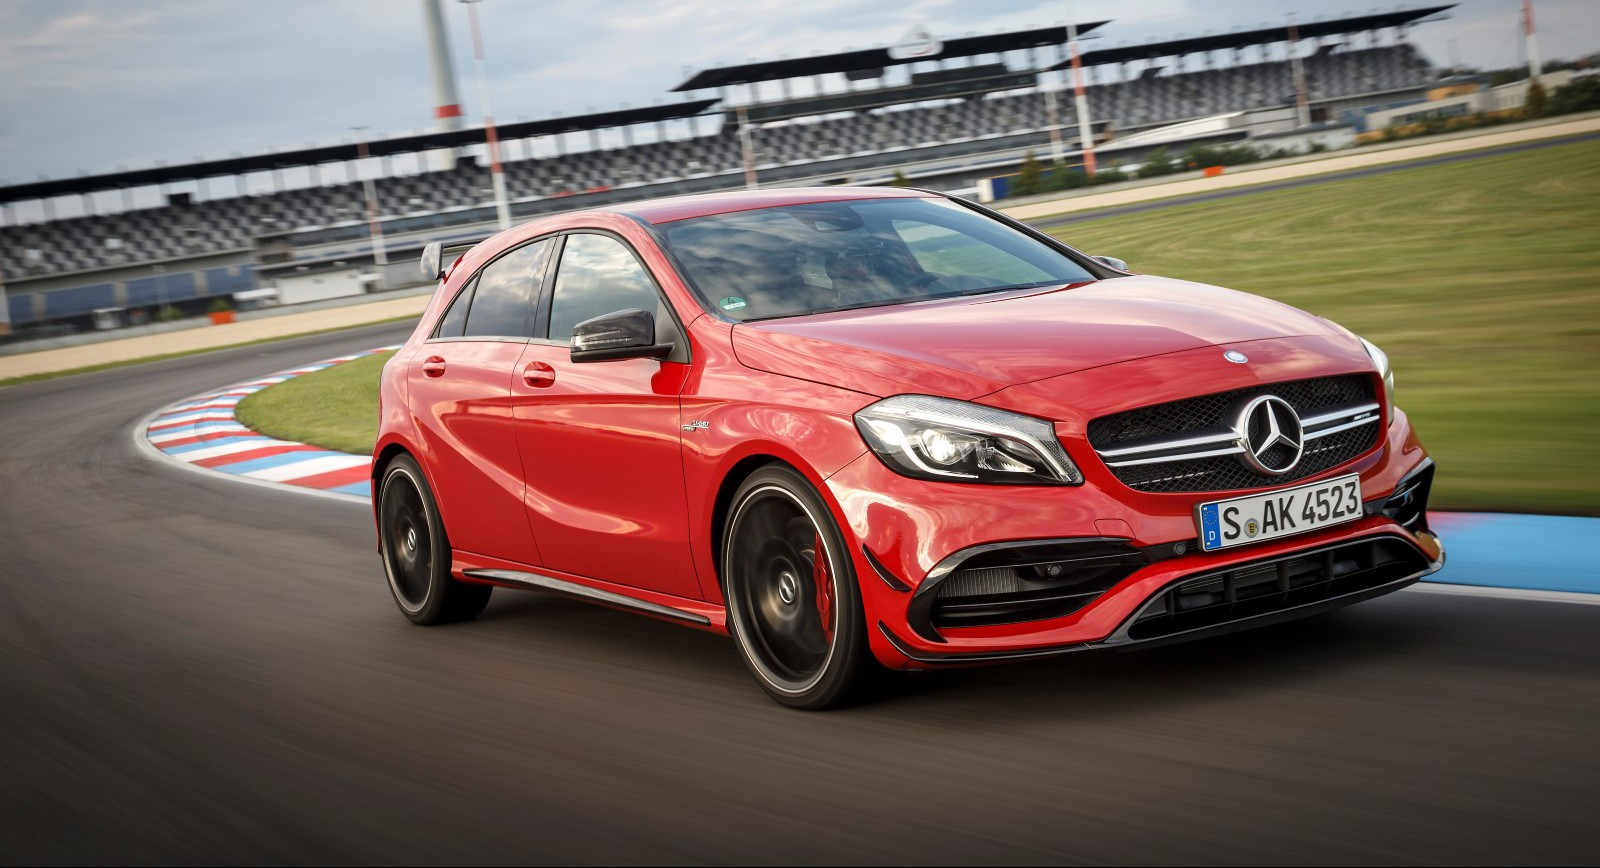 2016 mercedes amg a45 4matic review gtspirit. Black Bedroom Furniture Sets. Home Design Ideas